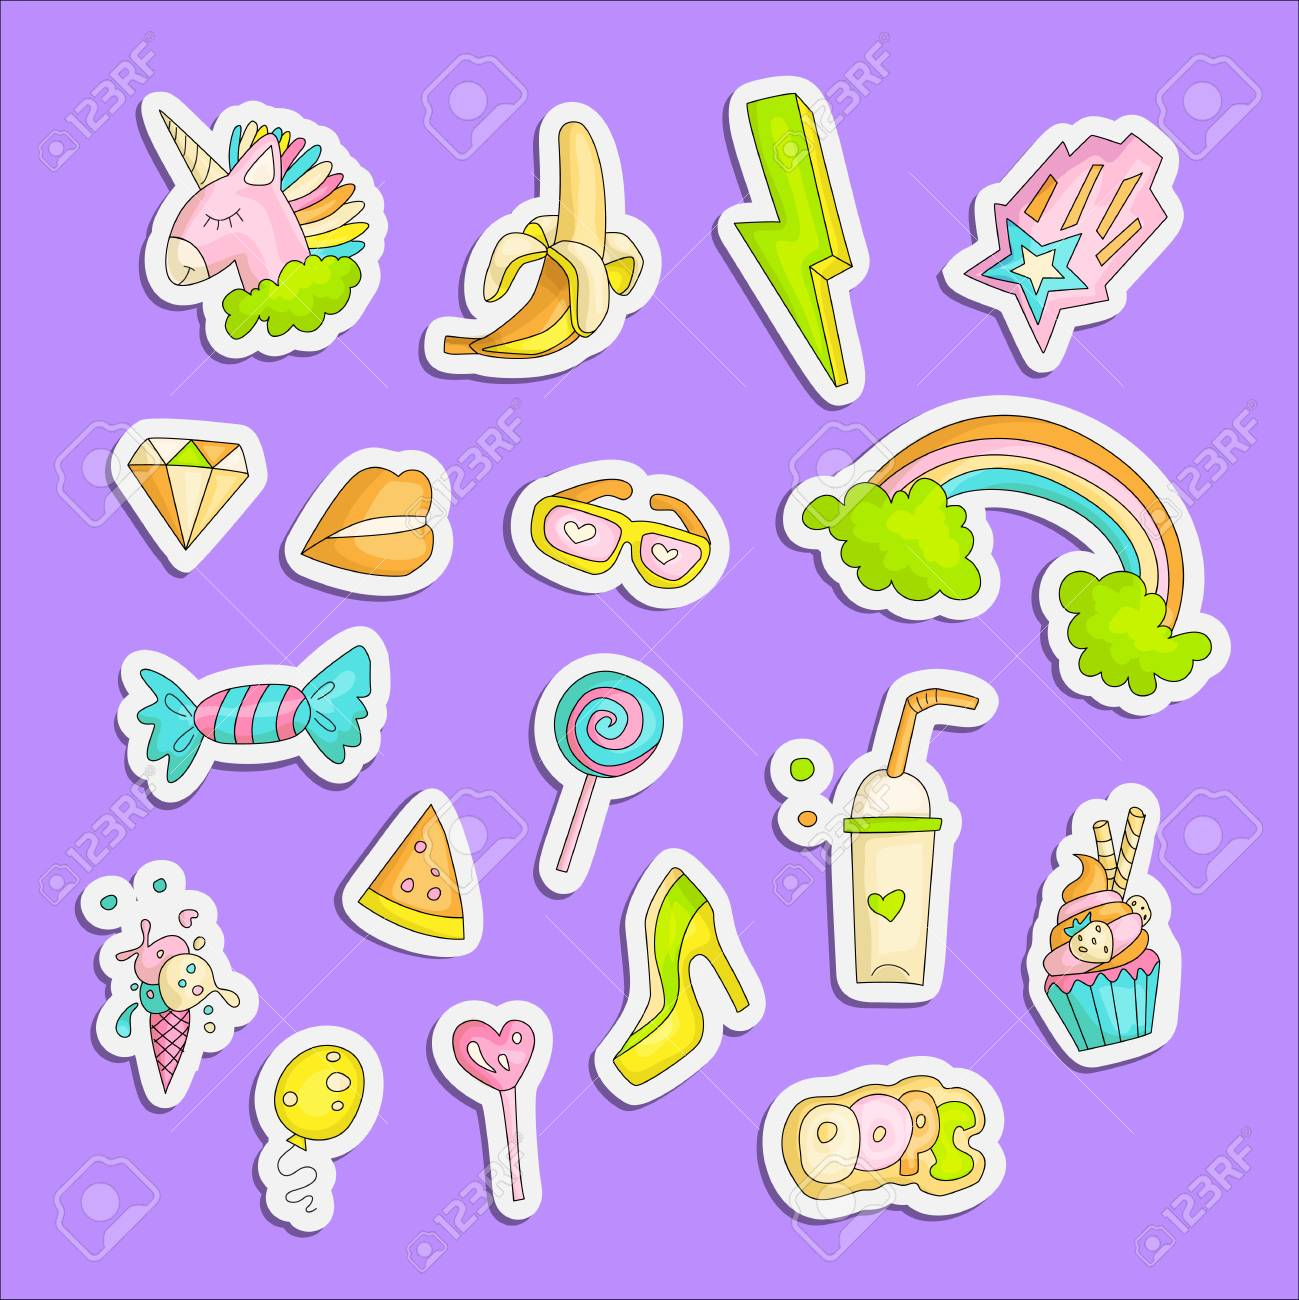 Cute Funny Girl Teenager Colored Stickers Set Fashion Cute Teen